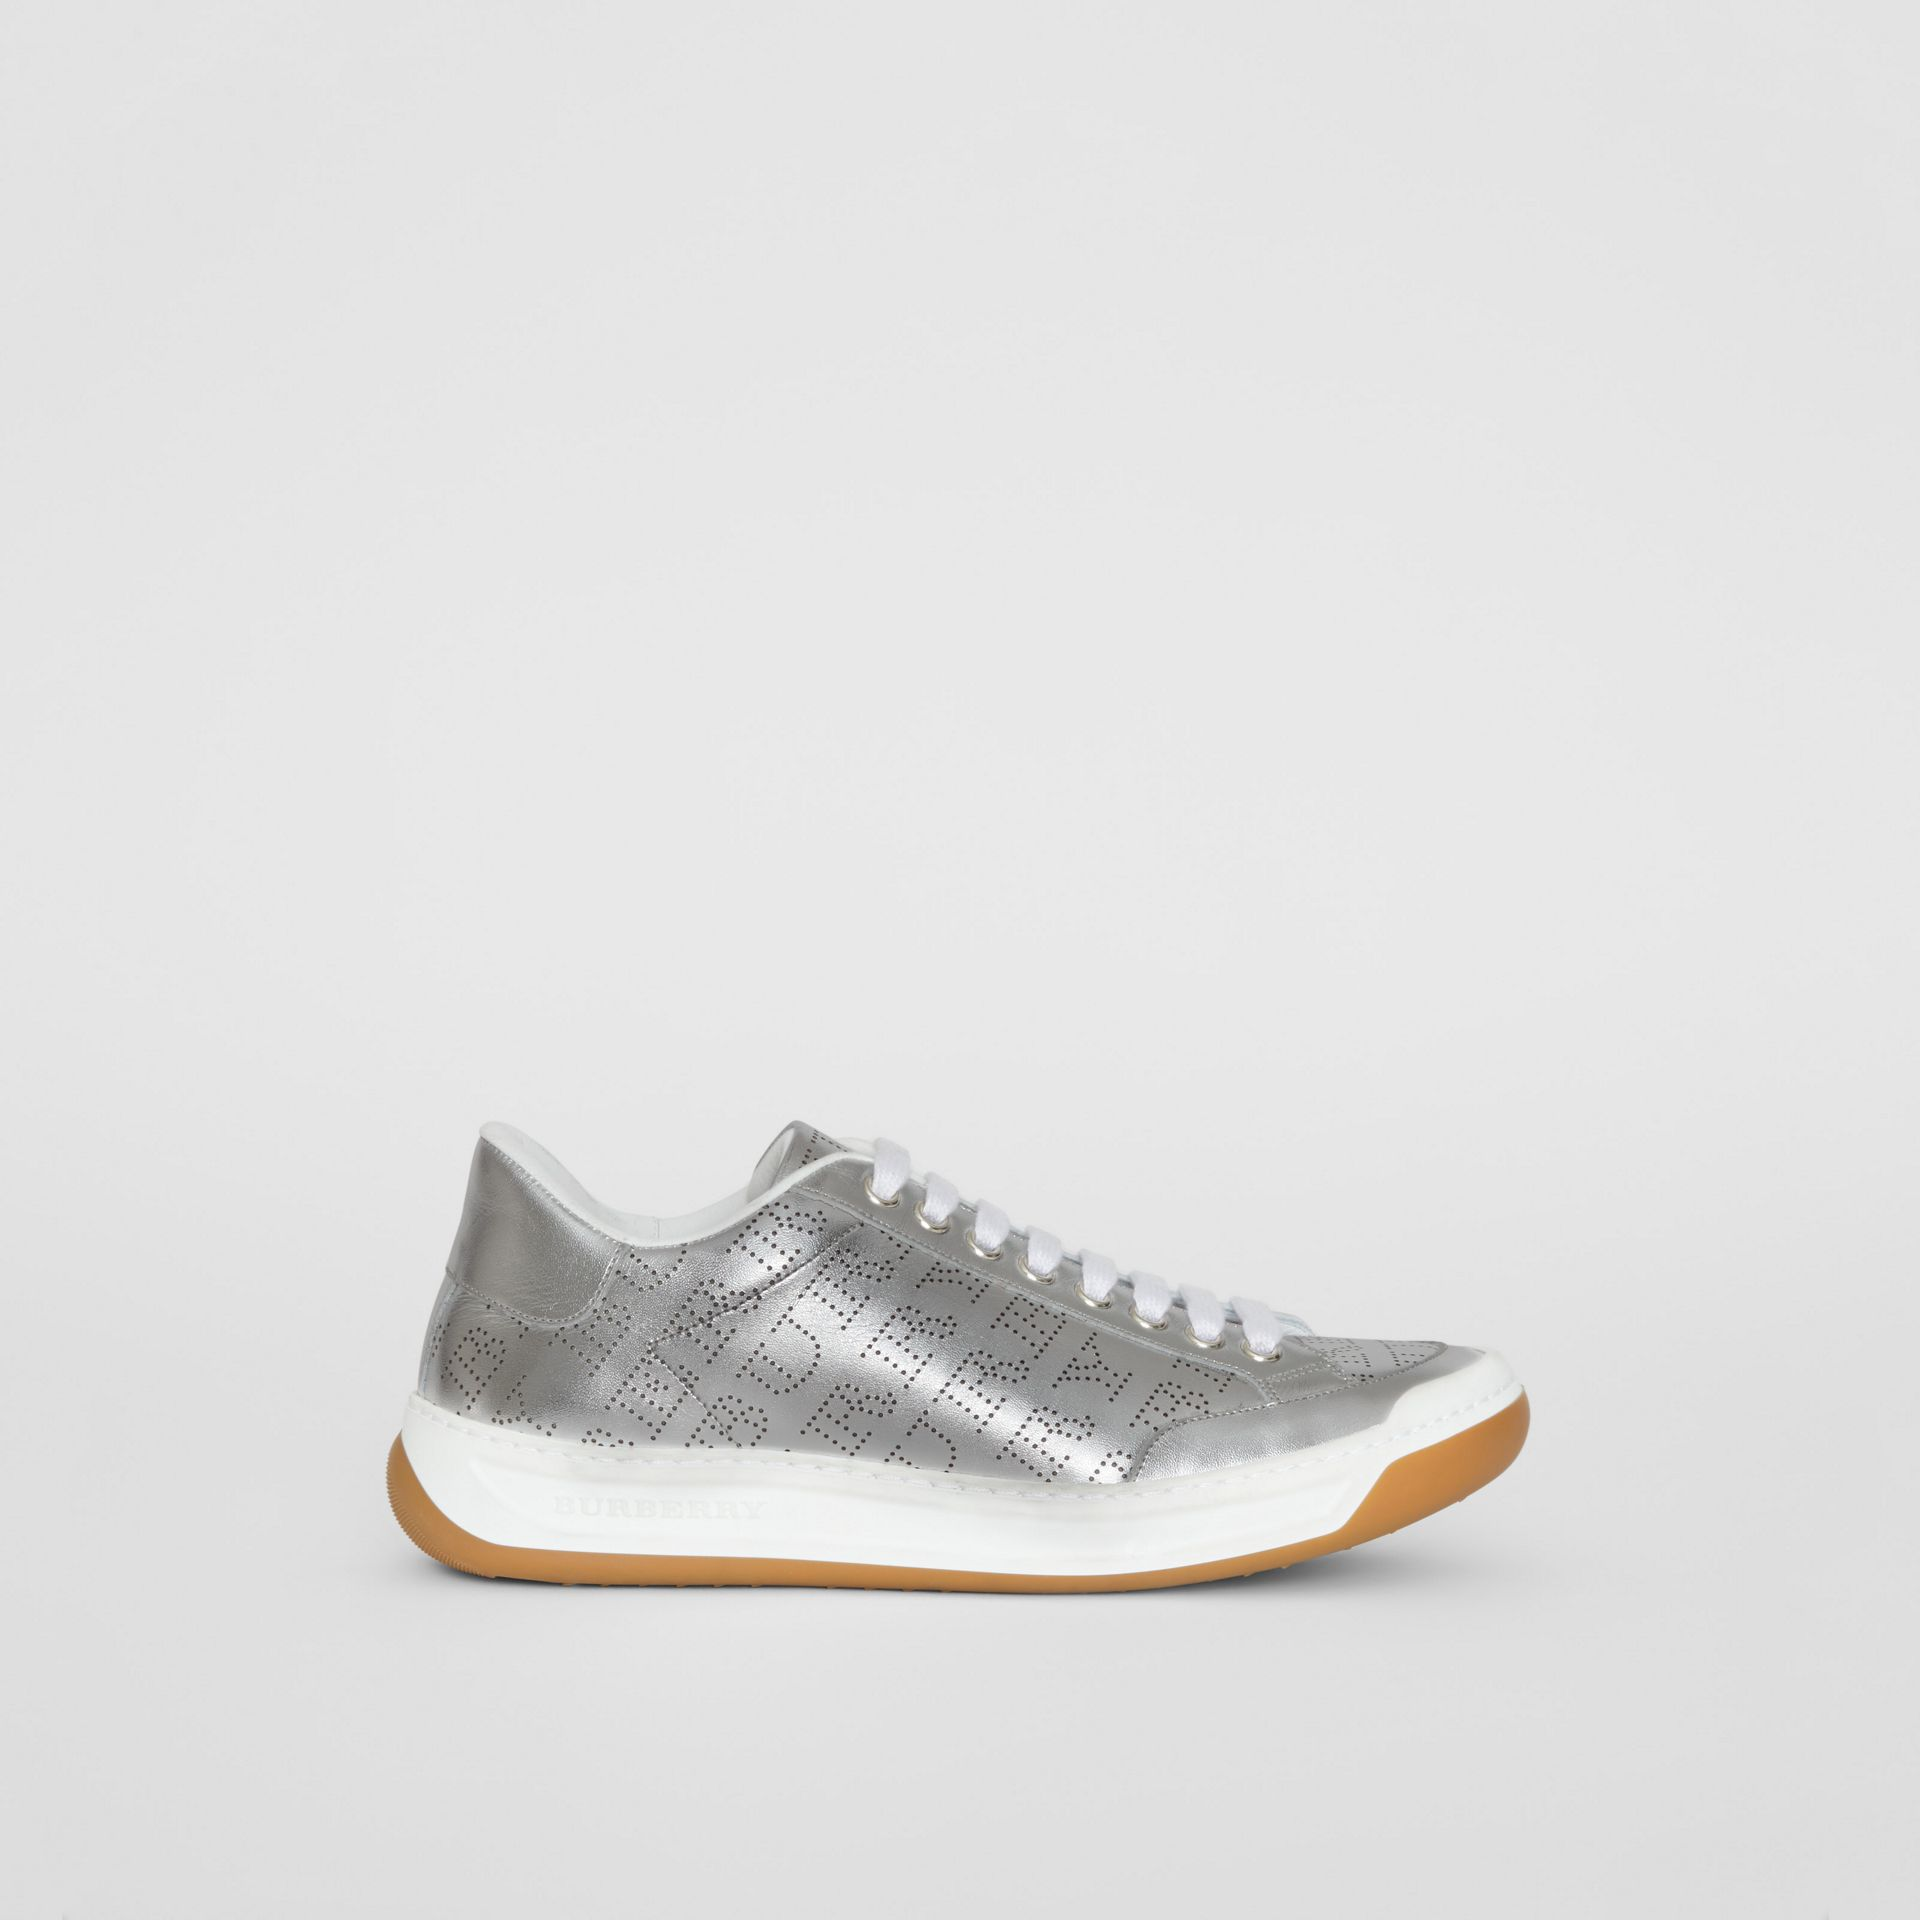 Perforated Logo Metallic Leather Sneakers in Silver Grey - Women | Burberry Hong Kong - gallery image 5